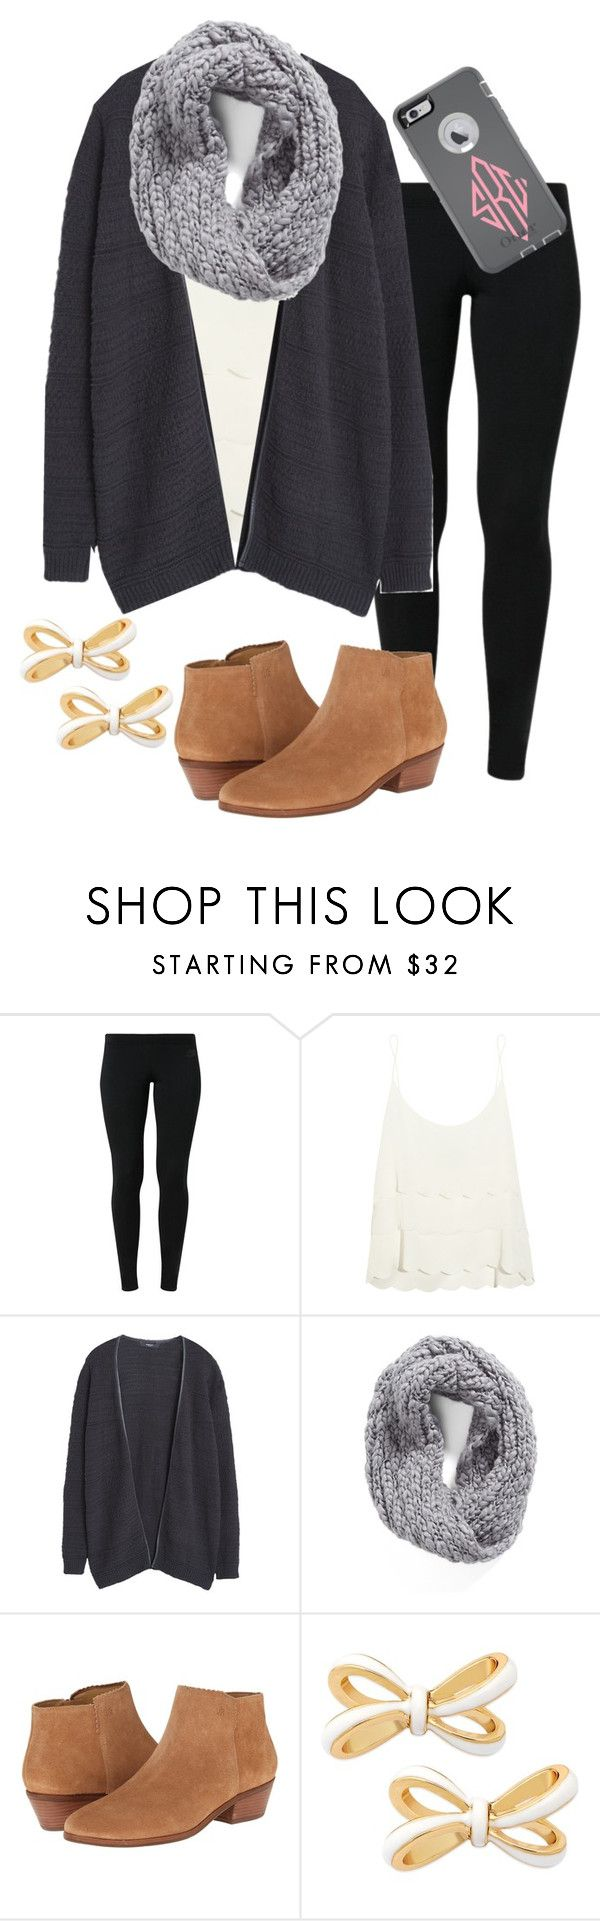 """Is this cute?"" by madelyn-abigail ❤ liked on Polyvore featuring moda, NIKE, Topshop, MANGO, Collection XIIX, Jack Rogers, Kate Spade, OtterBox, women's clothing e women's fashion"